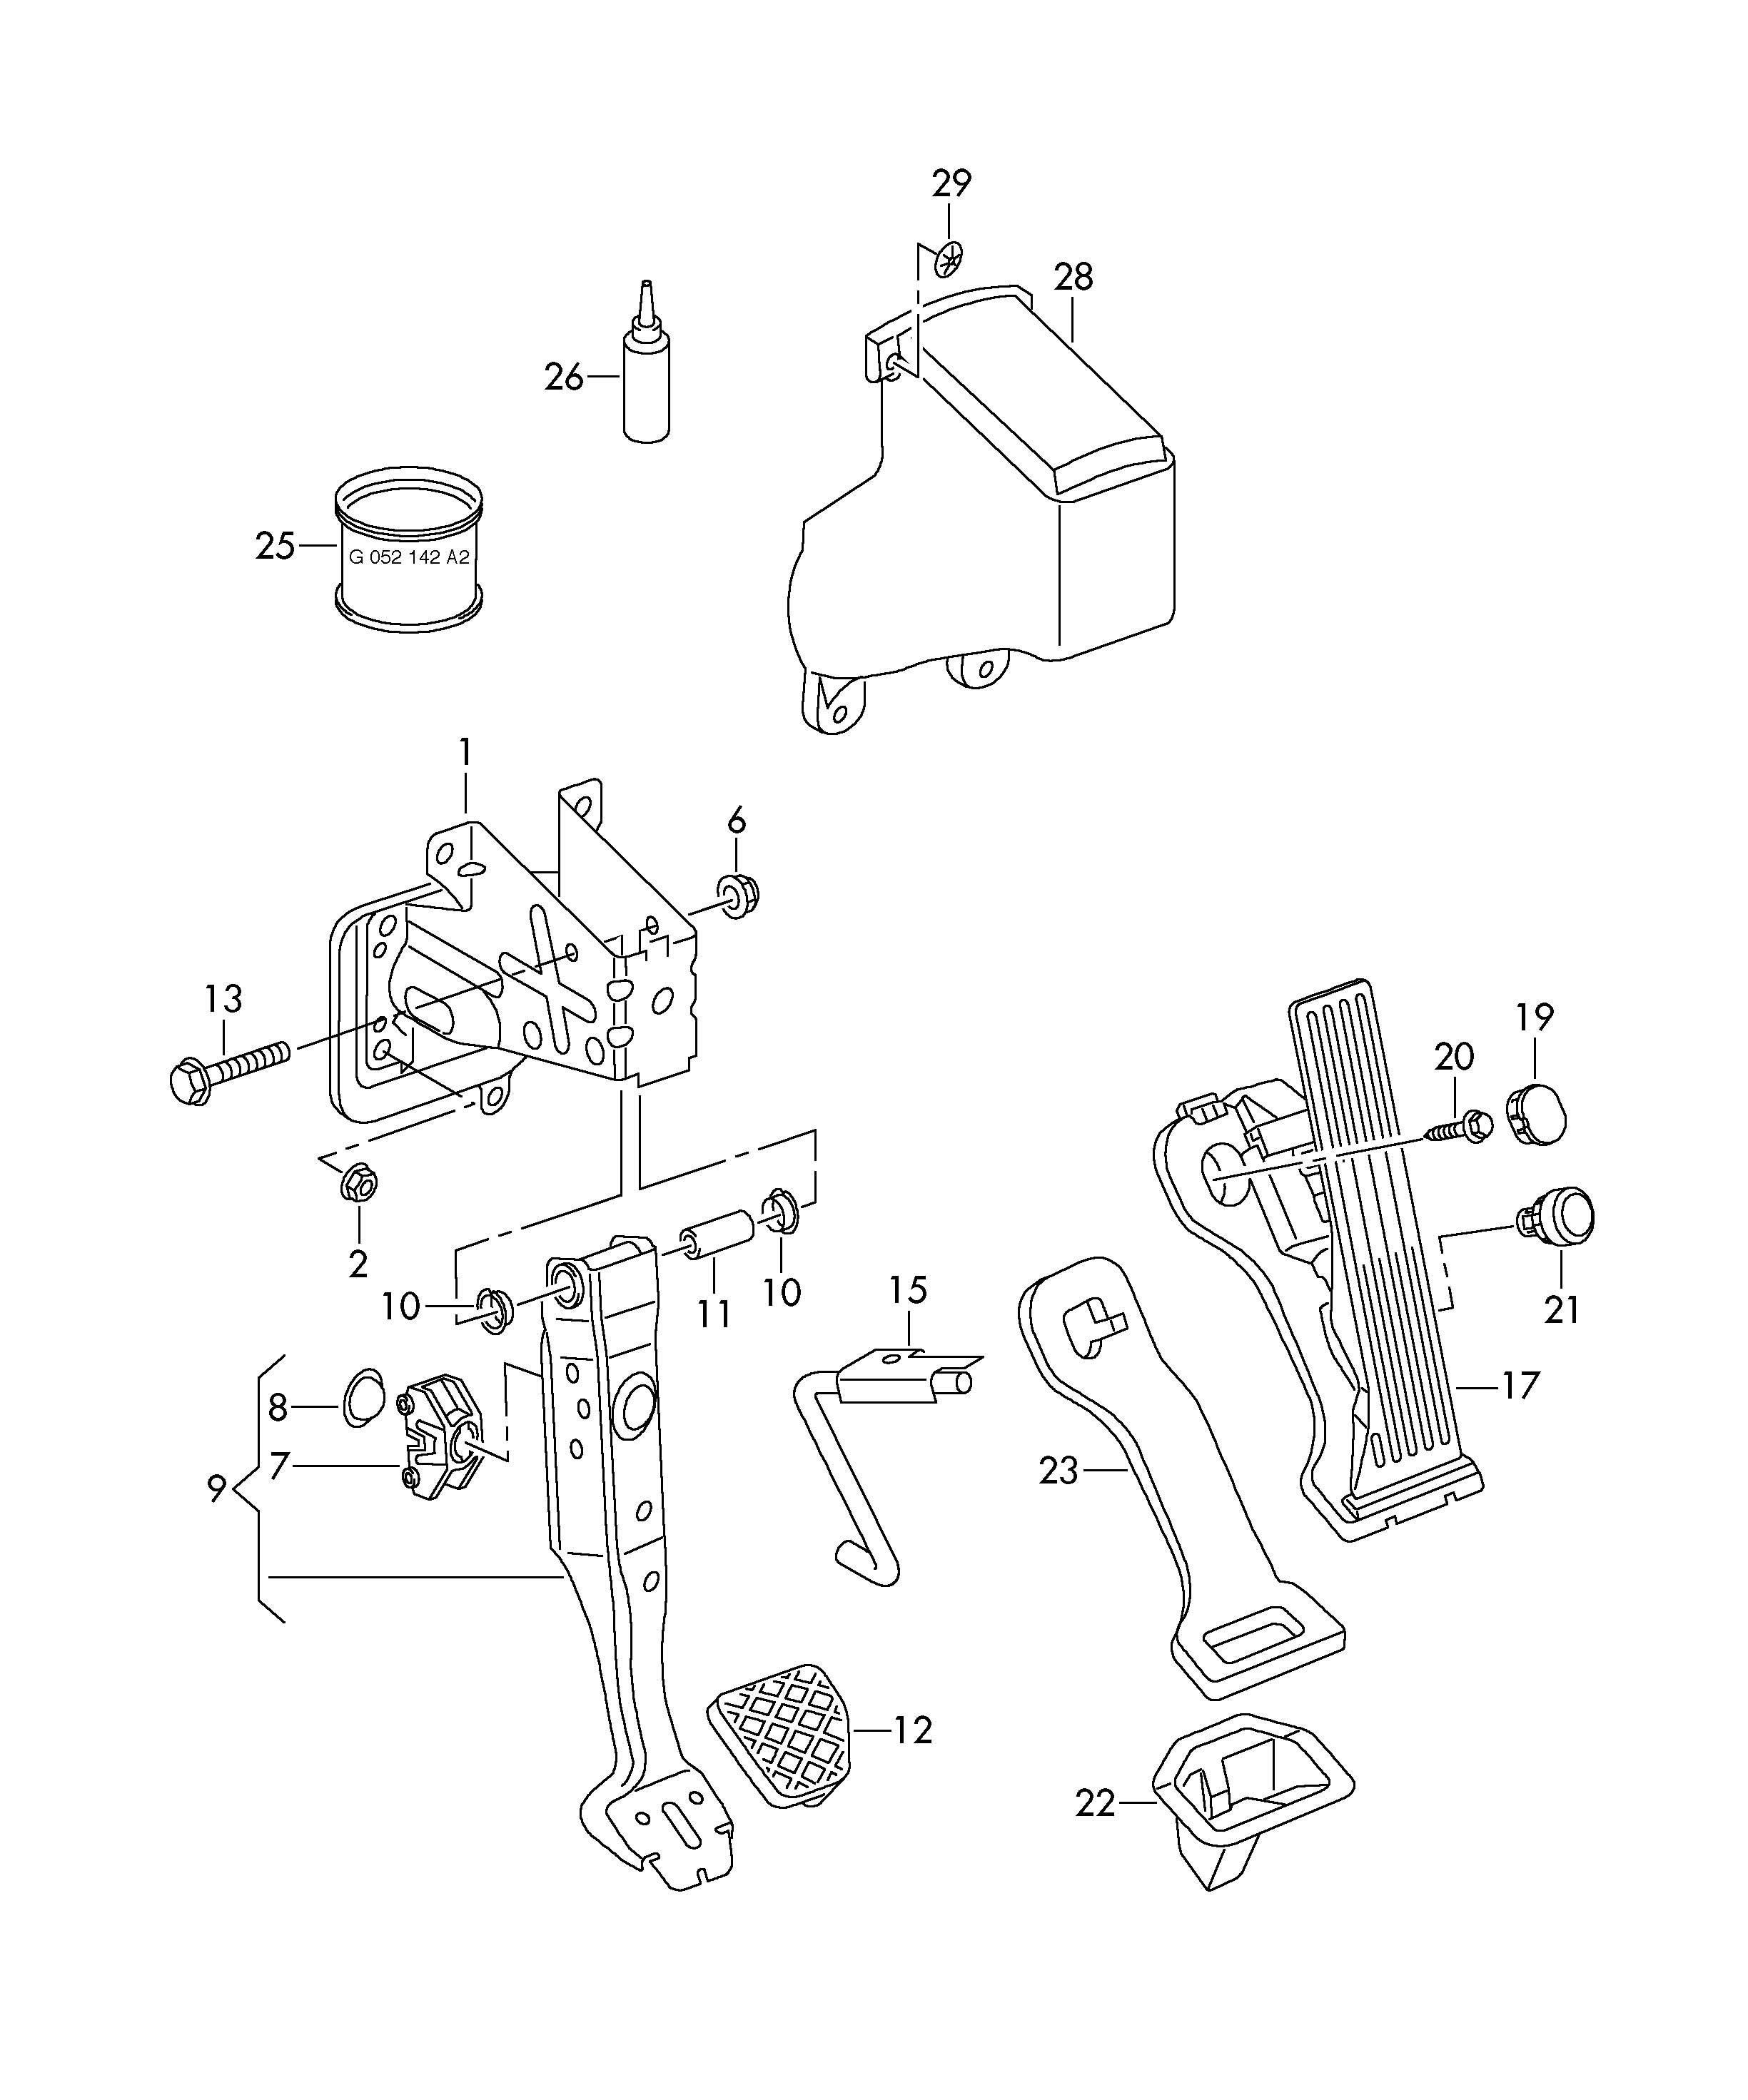 Volkswagen Rabbit Brake and acc. pedal assembly lhd